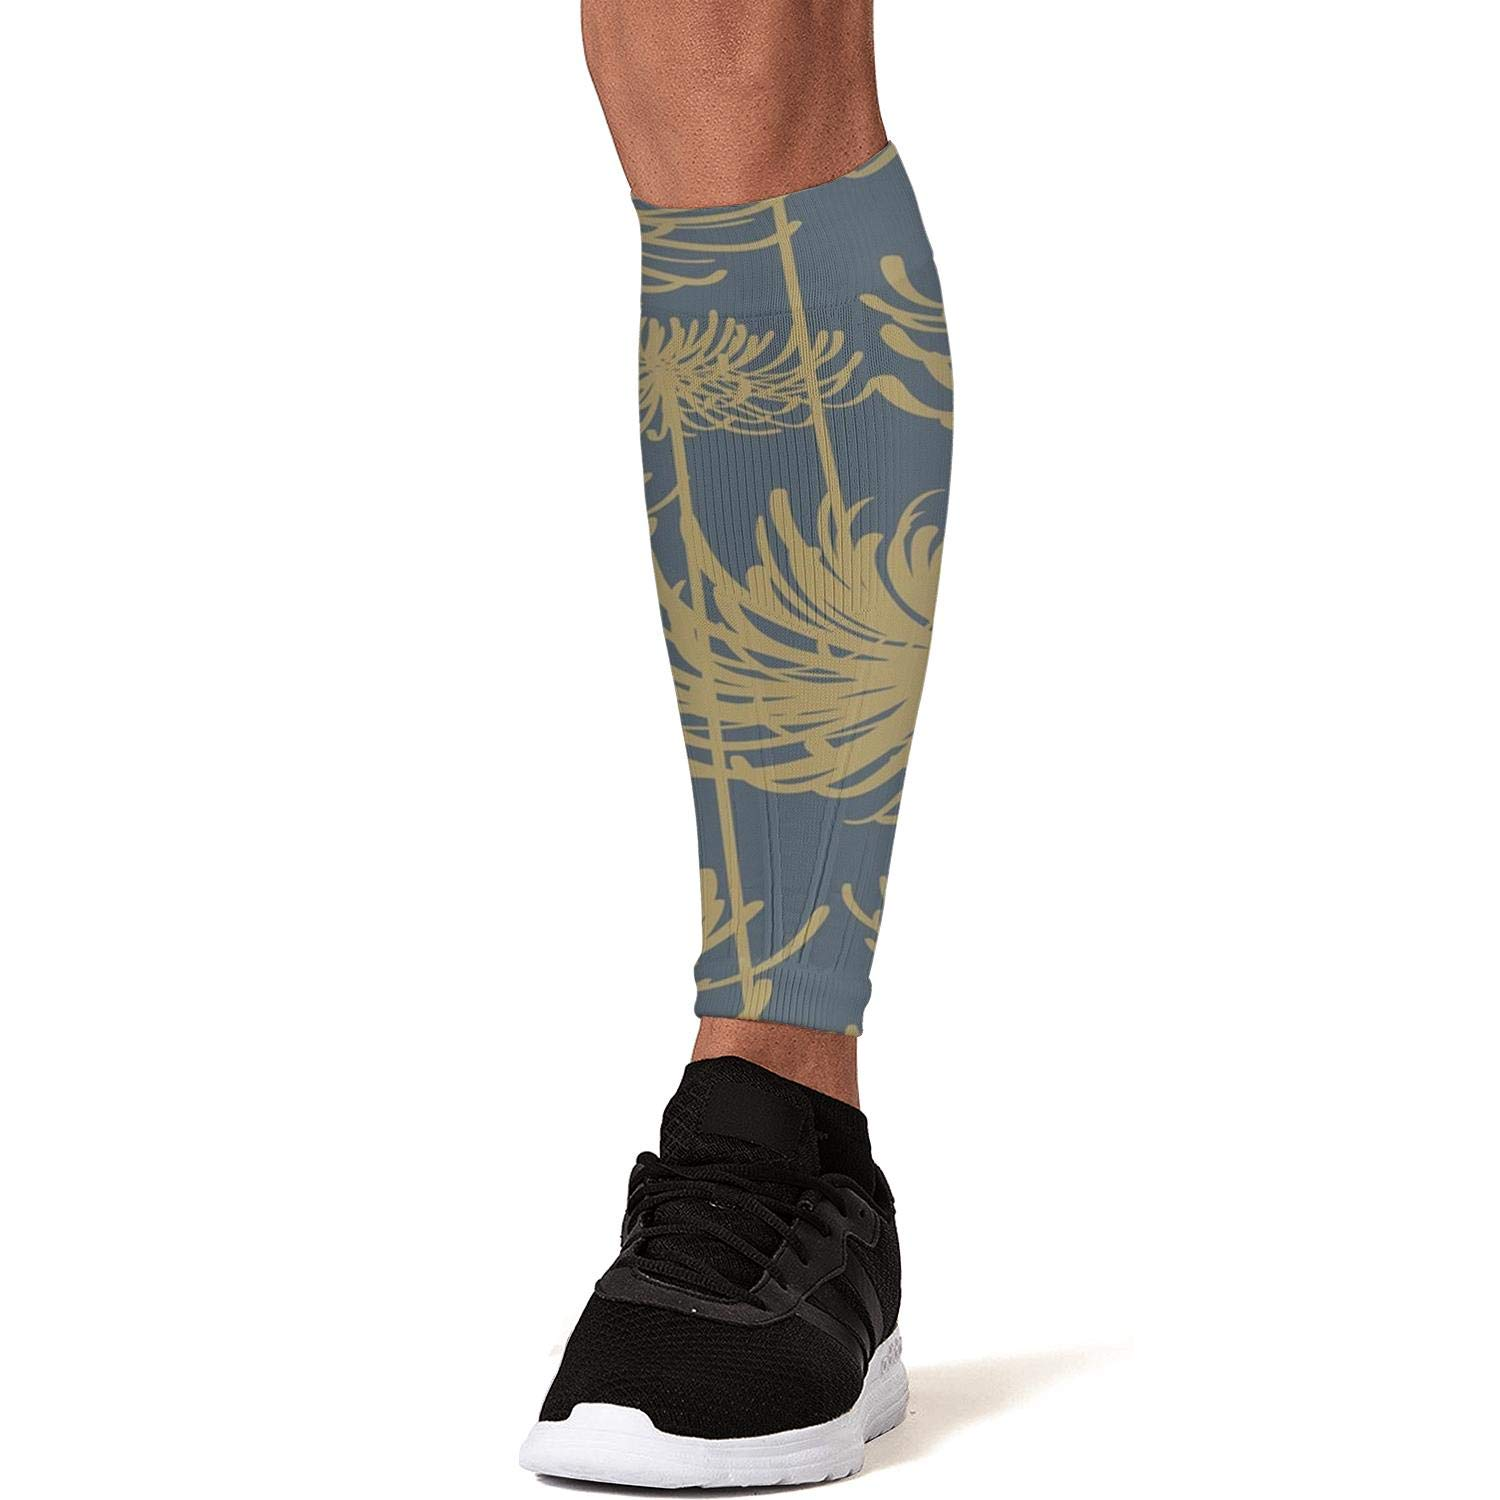 Smilelolly Fancy Floral Foliage Calf Compression Sleeves Helps Faster Recovery Leg Sleeves for Men Women